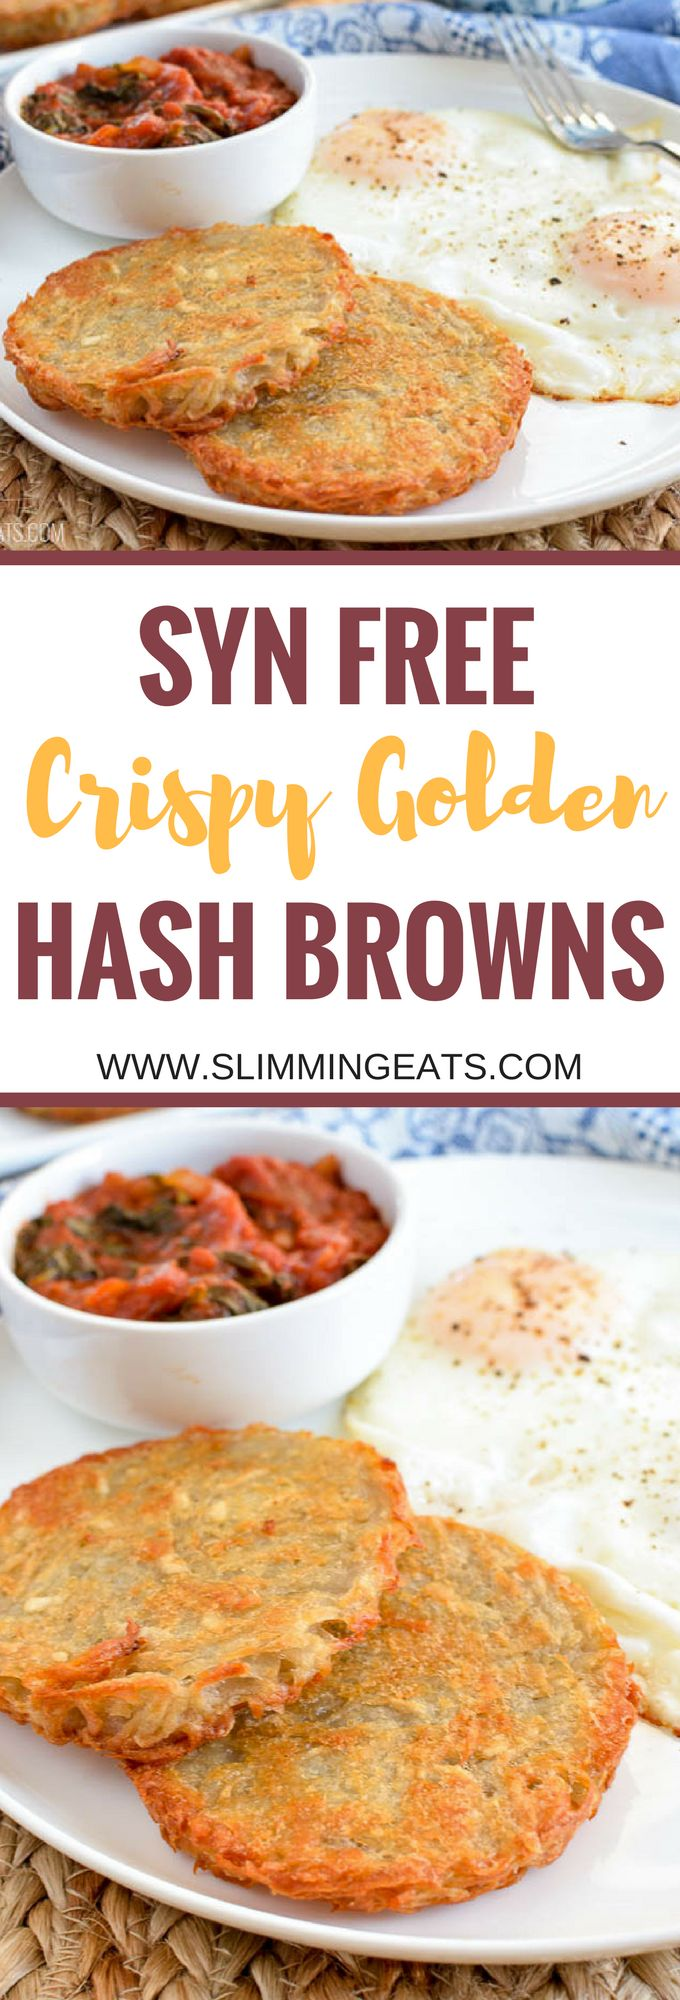 Slimming Eats Syn Free Crispy Golden Hash Browns. This gluten-free, vegetarian and paleo recipe is worth trying!